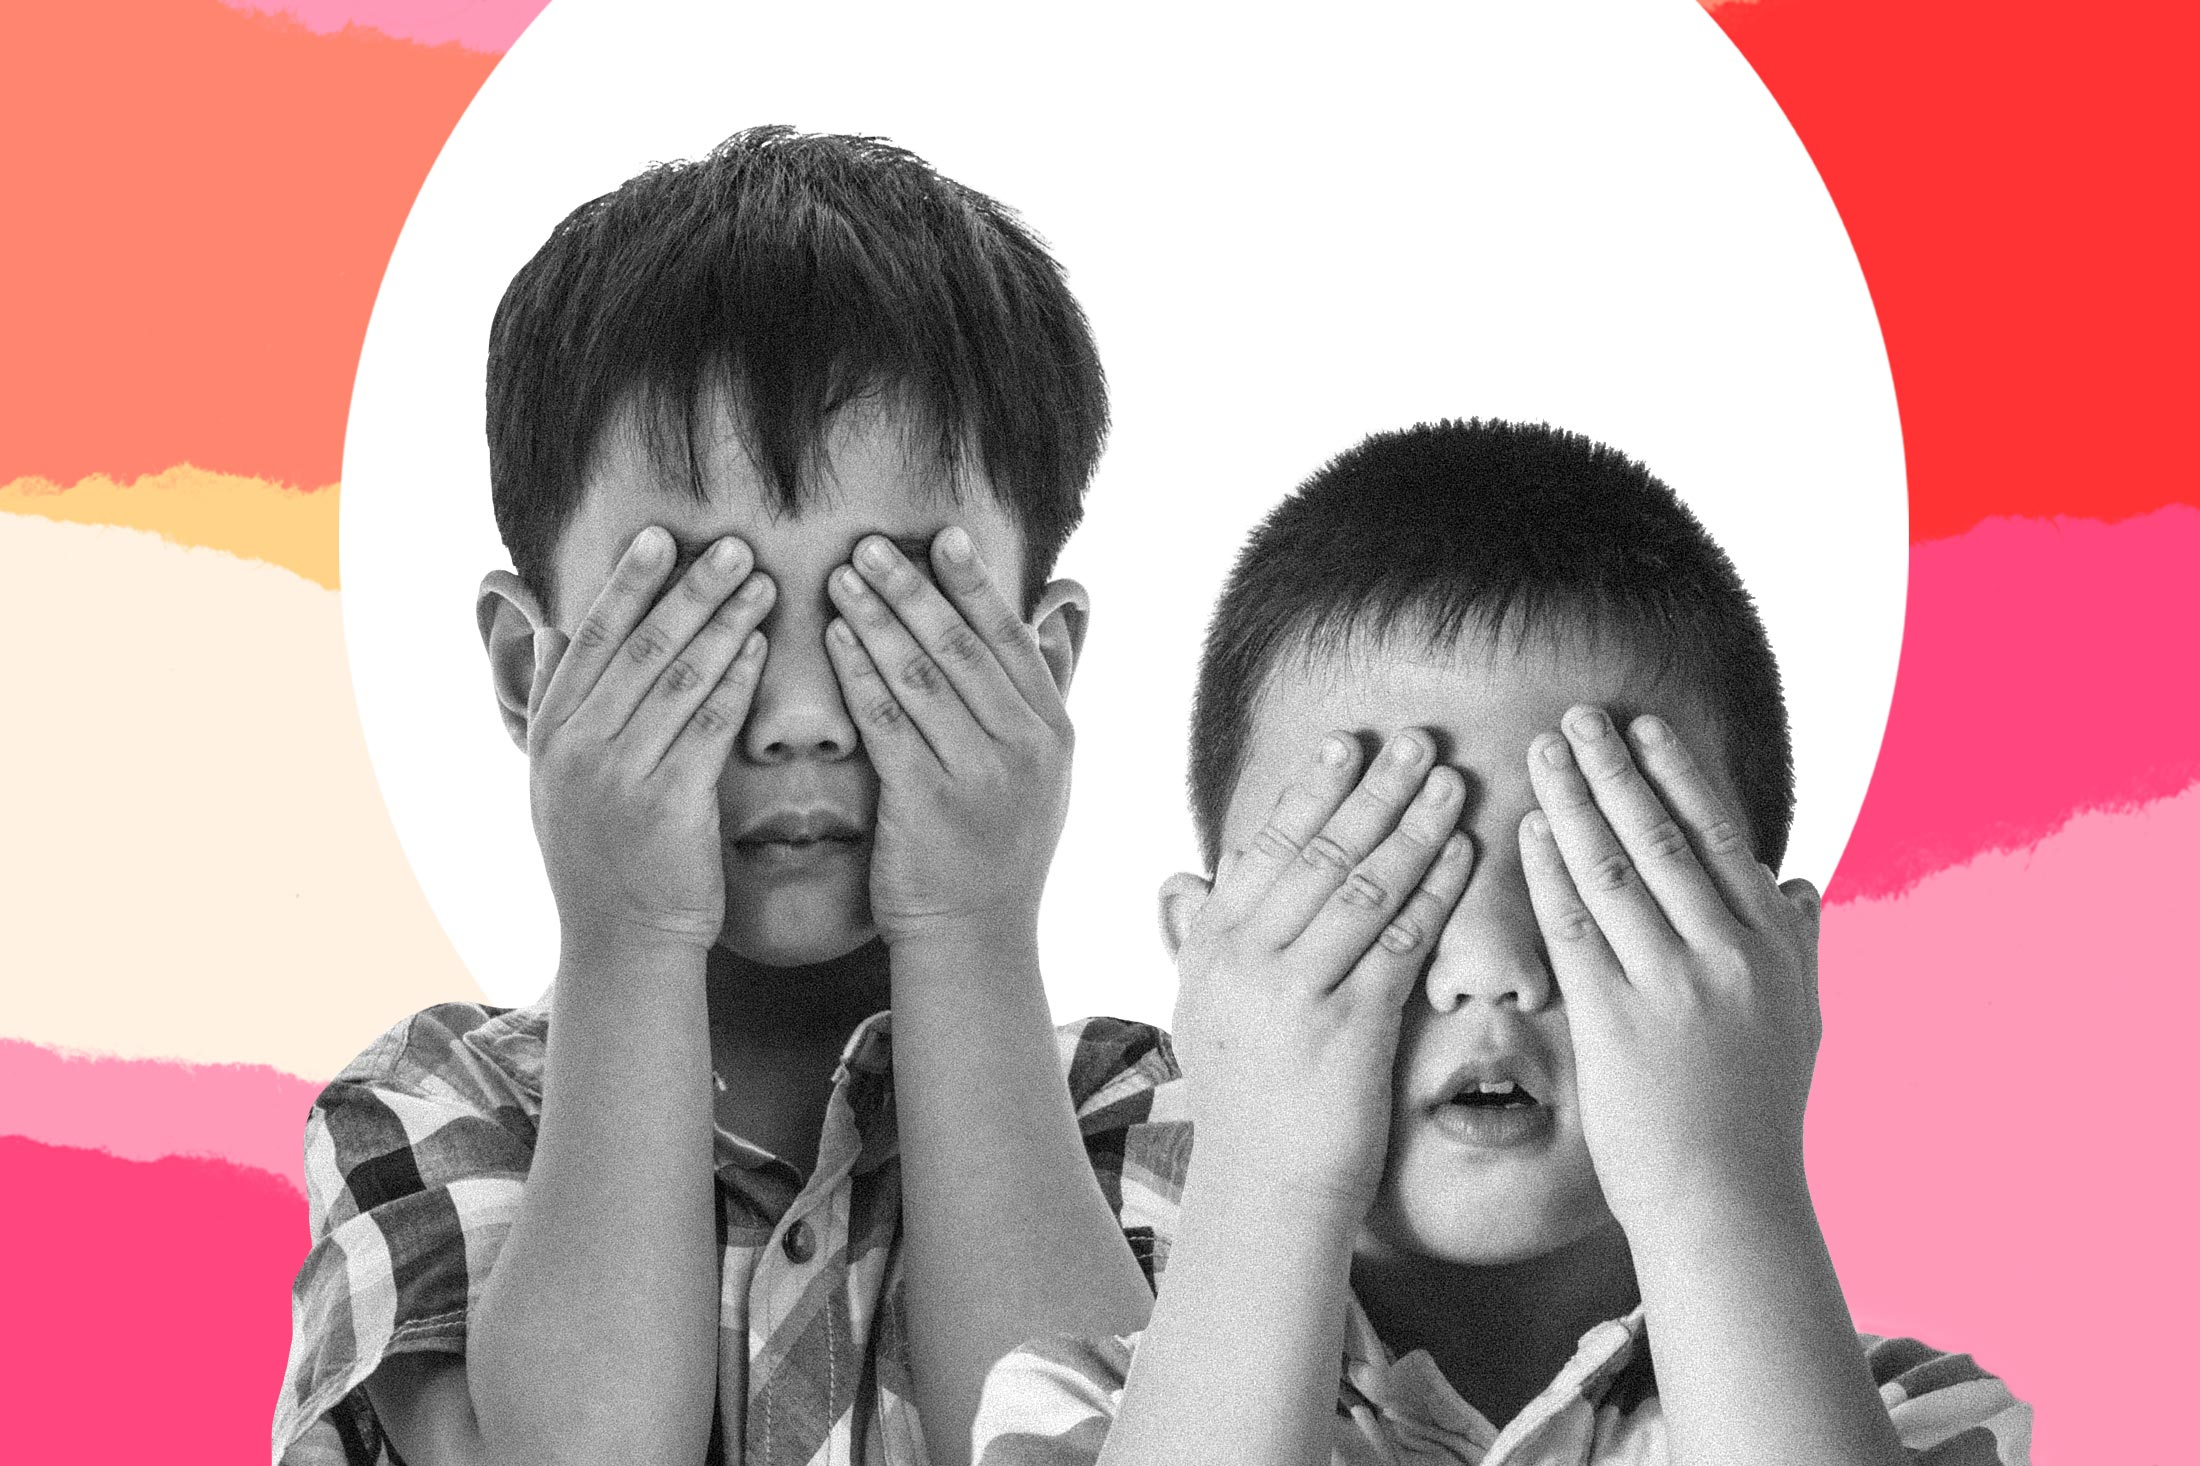 Photo illustration of two boys covering their eyes.